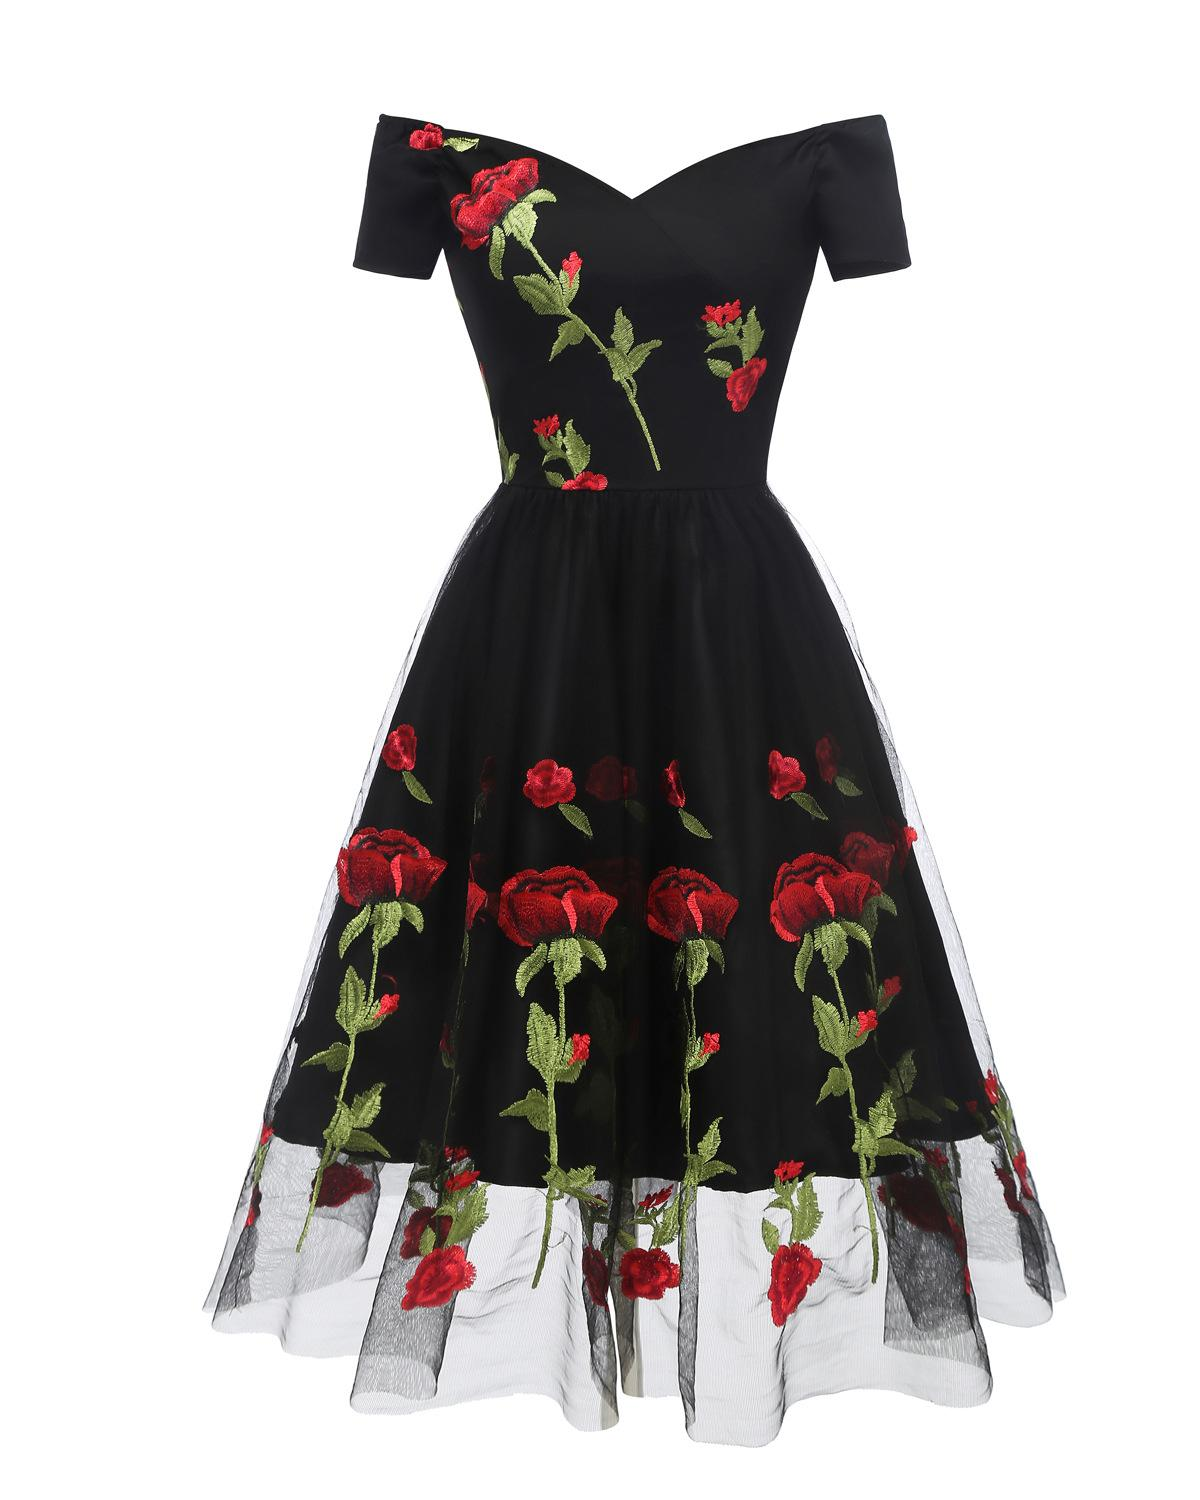 V-neck Off-shoulder Black Ivory Embroidery   Cocktail     Dresses   Robe Flowers elegant party 2019 Short Vestidos Homecoming   Dress